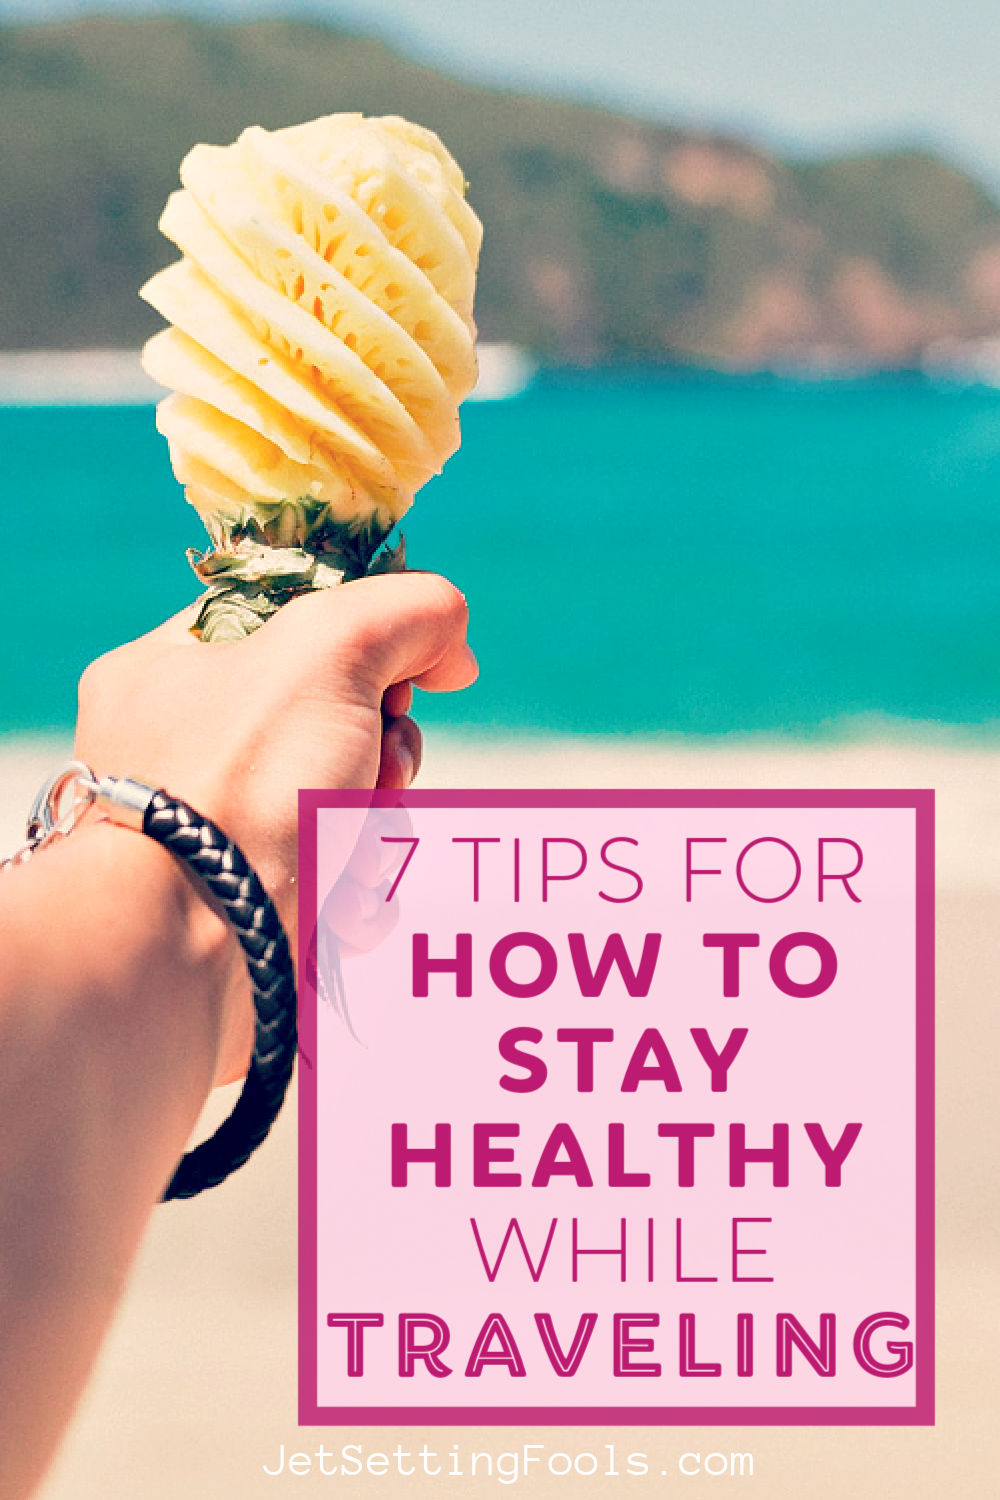 Tips for How to Stay Healthy When Traveling by JetSettingFools.com